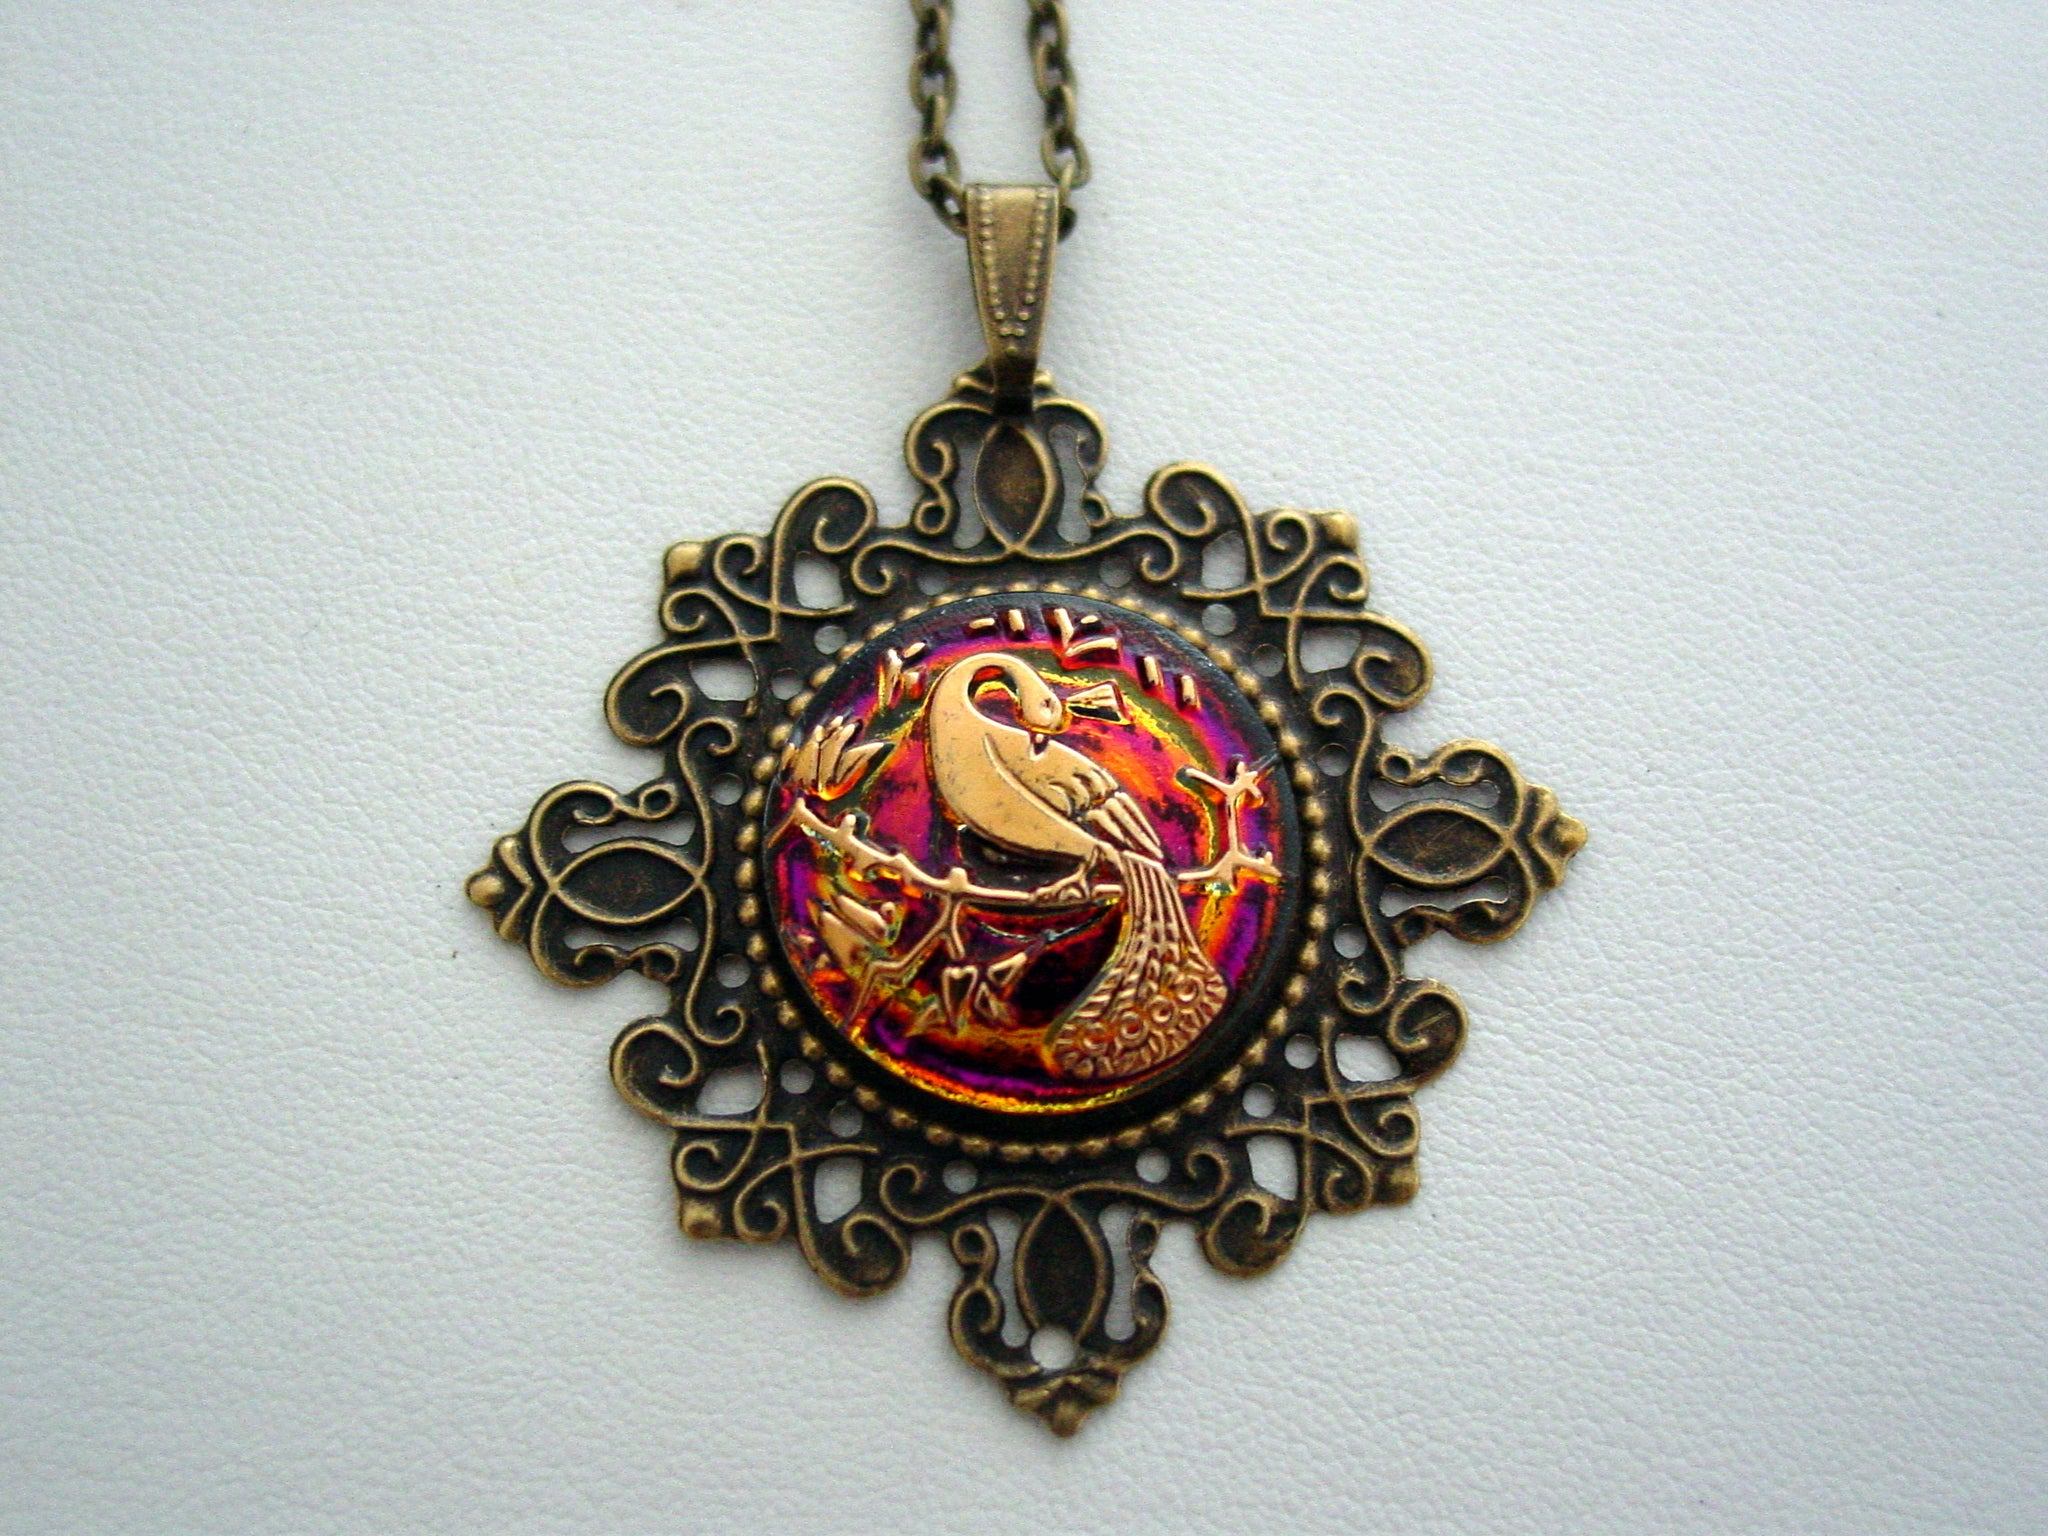 Peacock Necklace, Handmade Glass Peacock Pendant, Filigree Georgian Peafowl Necklace, Antique Bronze Necklace